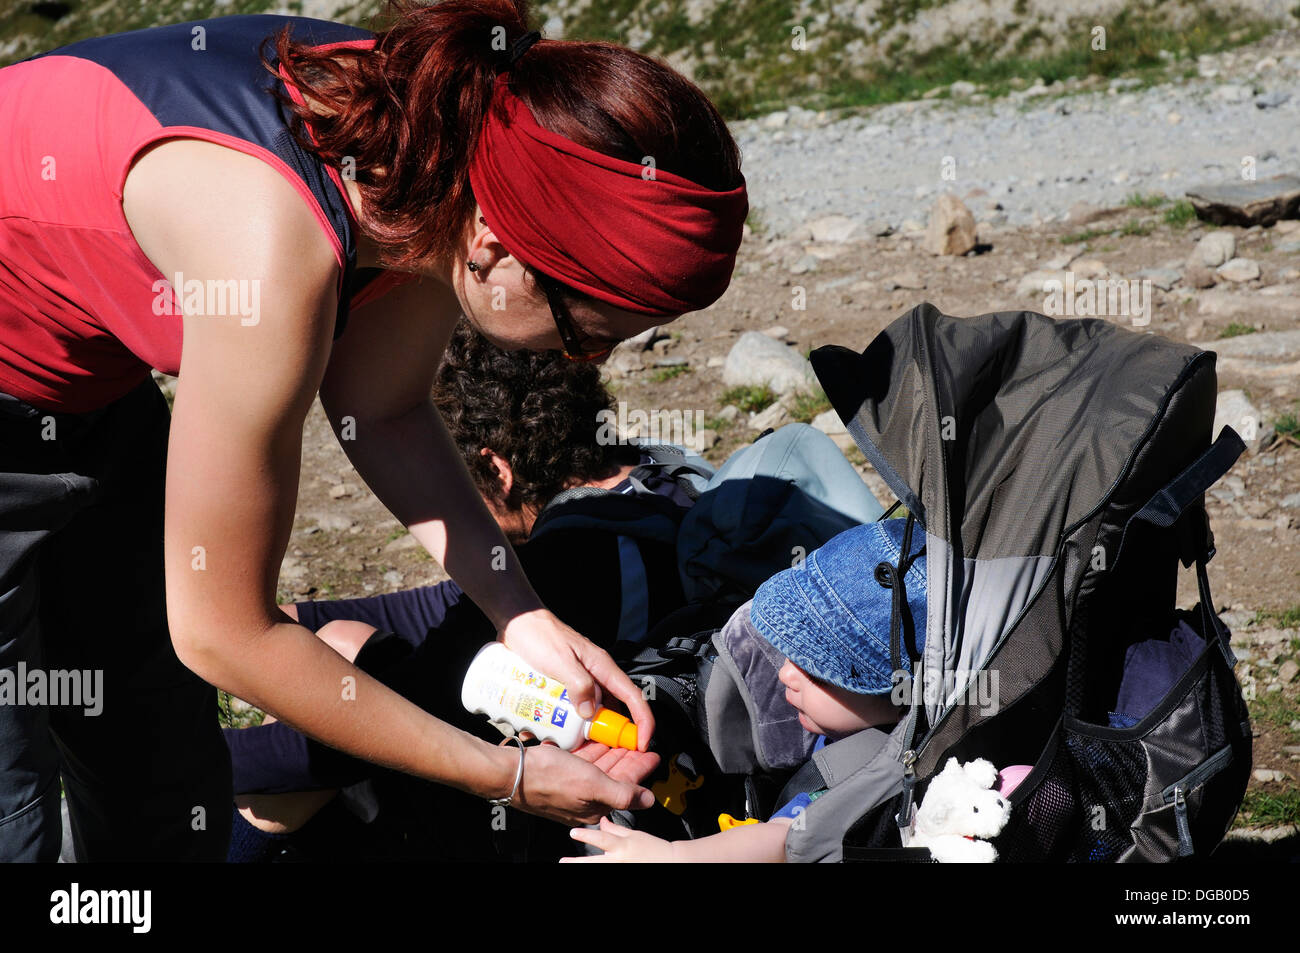 A mother putting suncream on a baby - Stock Image